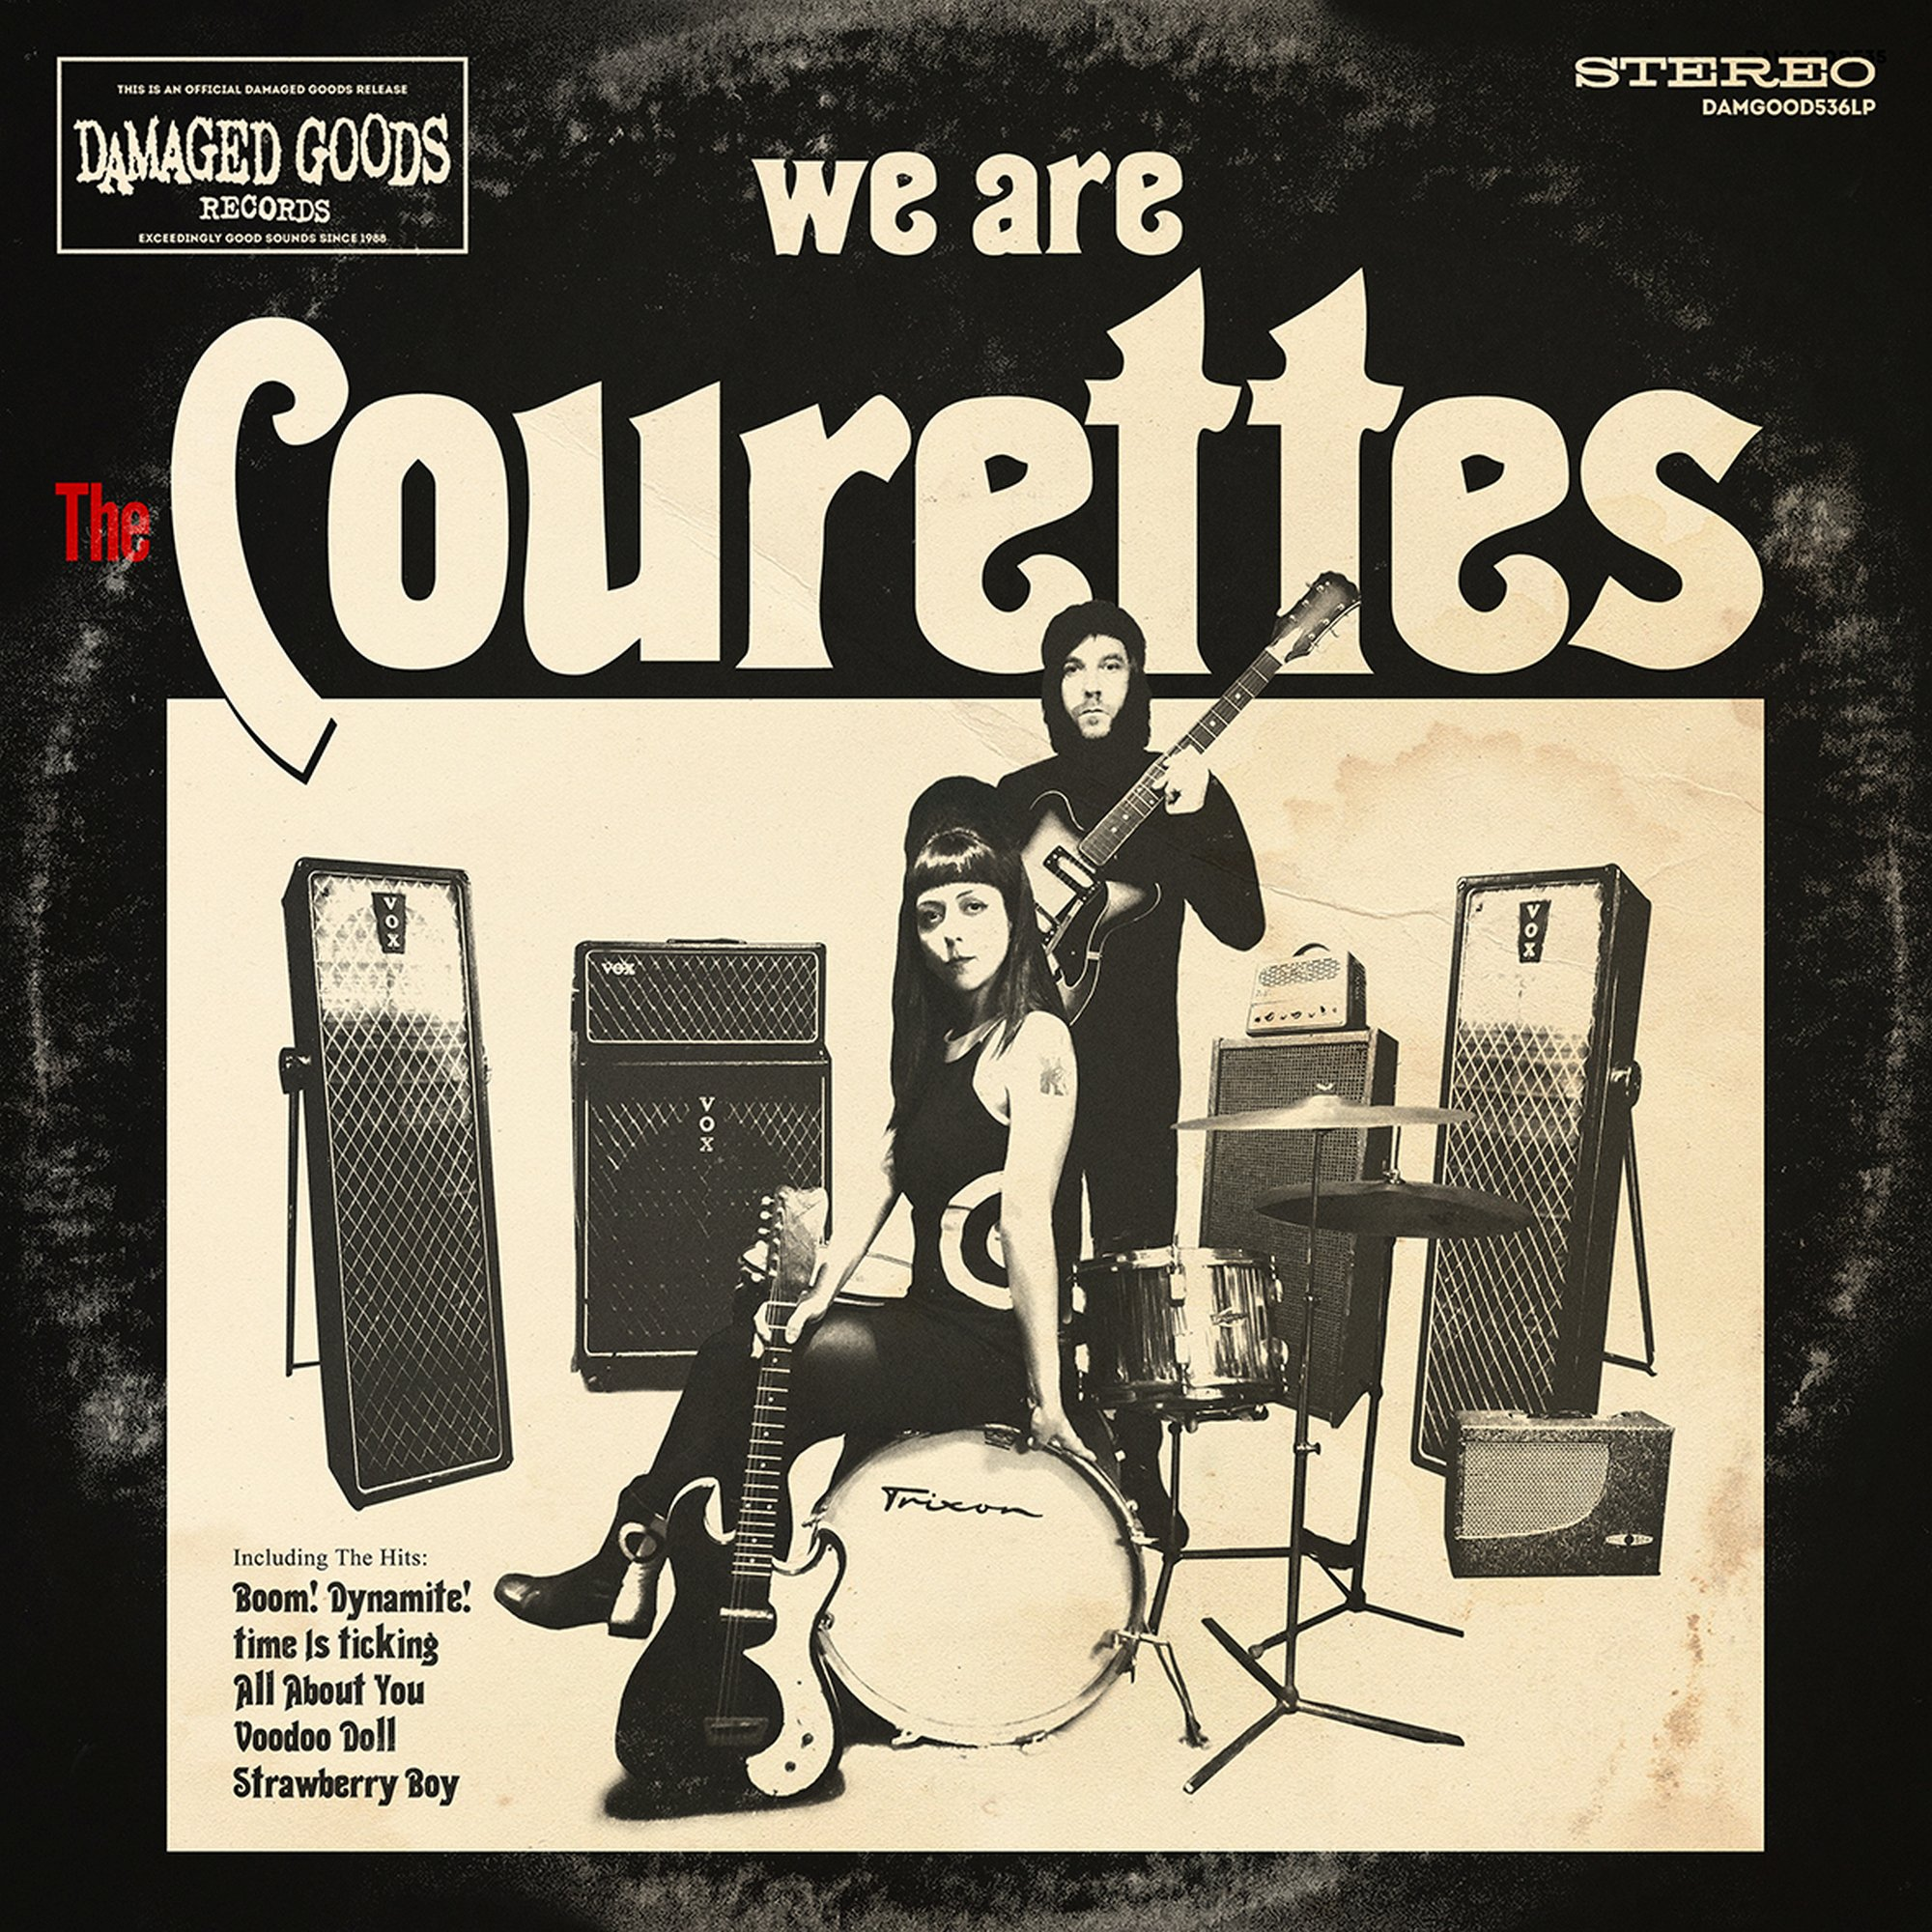 We Are The Courettes - The Courettes - Musik - CARGO DUITSLAND - 5020422053618 - July 16, 2021